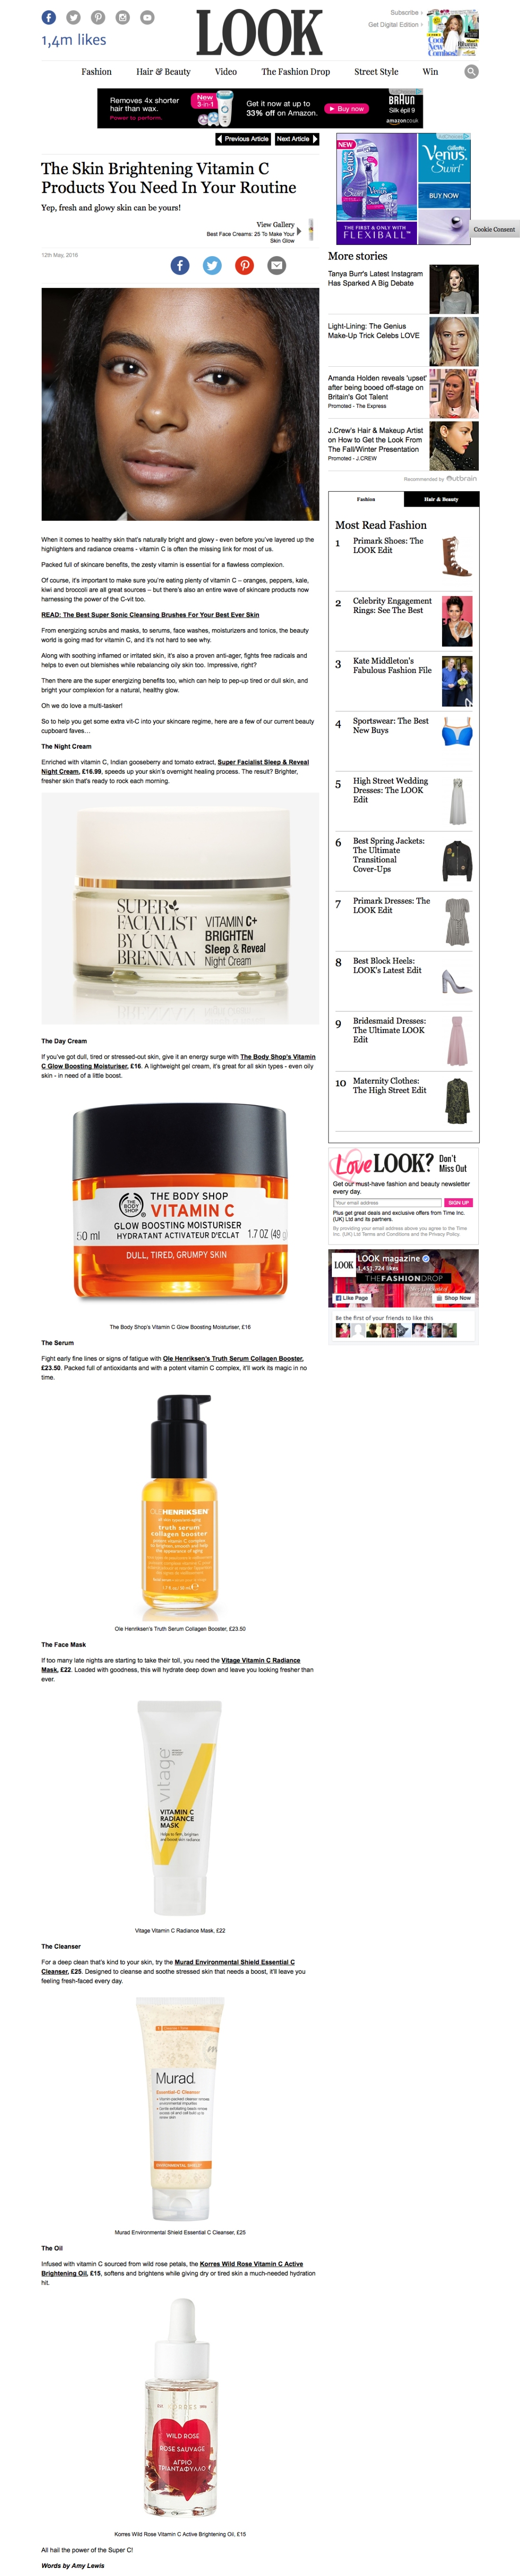 The_best_vitamin_C_skincare_for_flawless_skin_Look_-_2016-05-14_11.32.27 copy